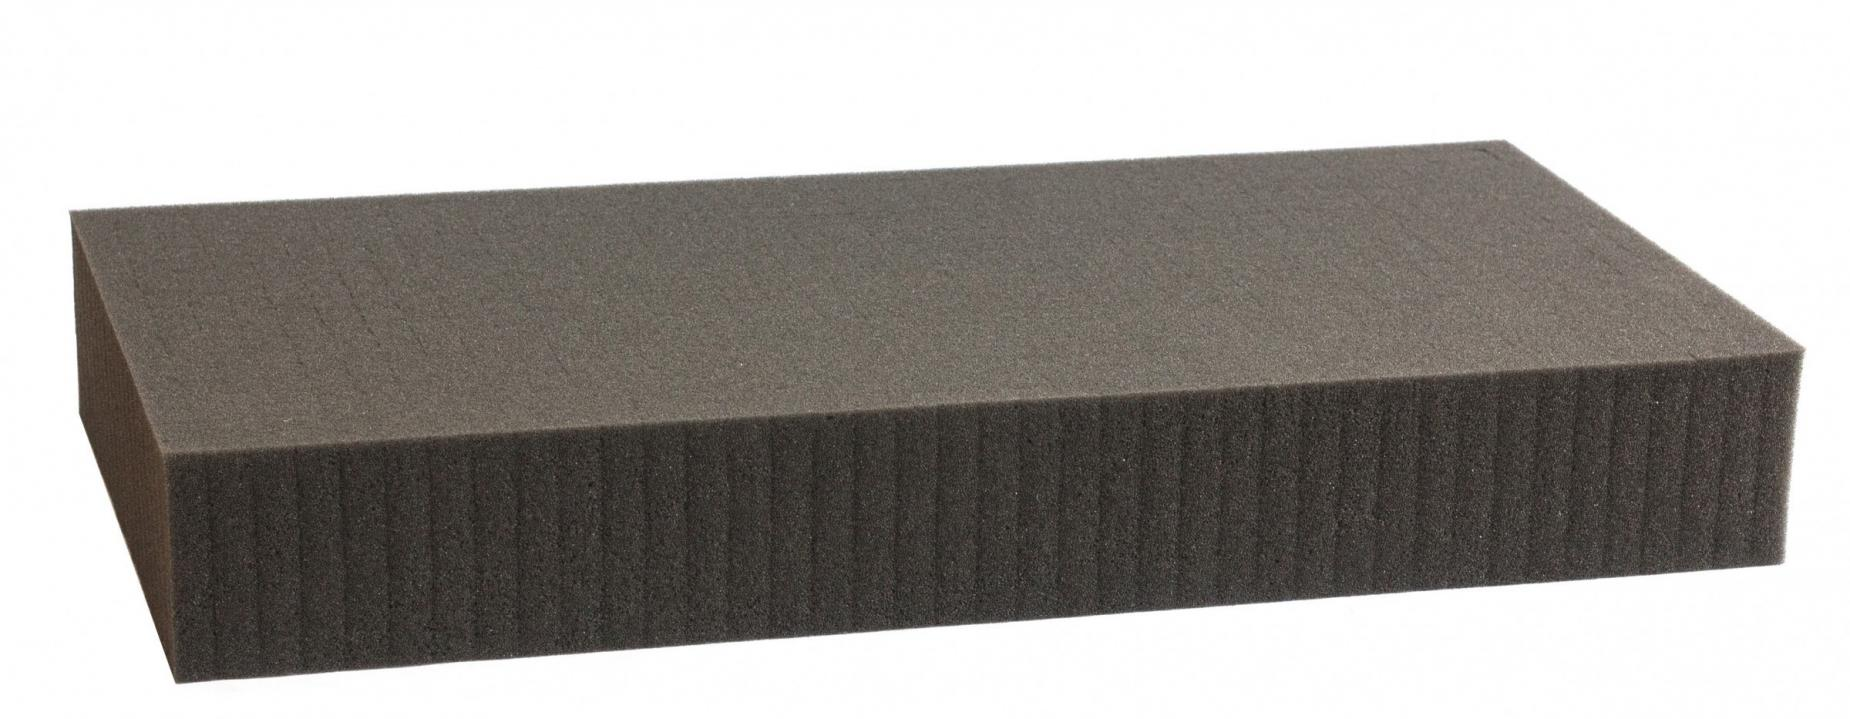 750 mm x 550 mm x 70 mm - Raster 15 mm - Pick and Pluck / Pre-Cubed foam tray